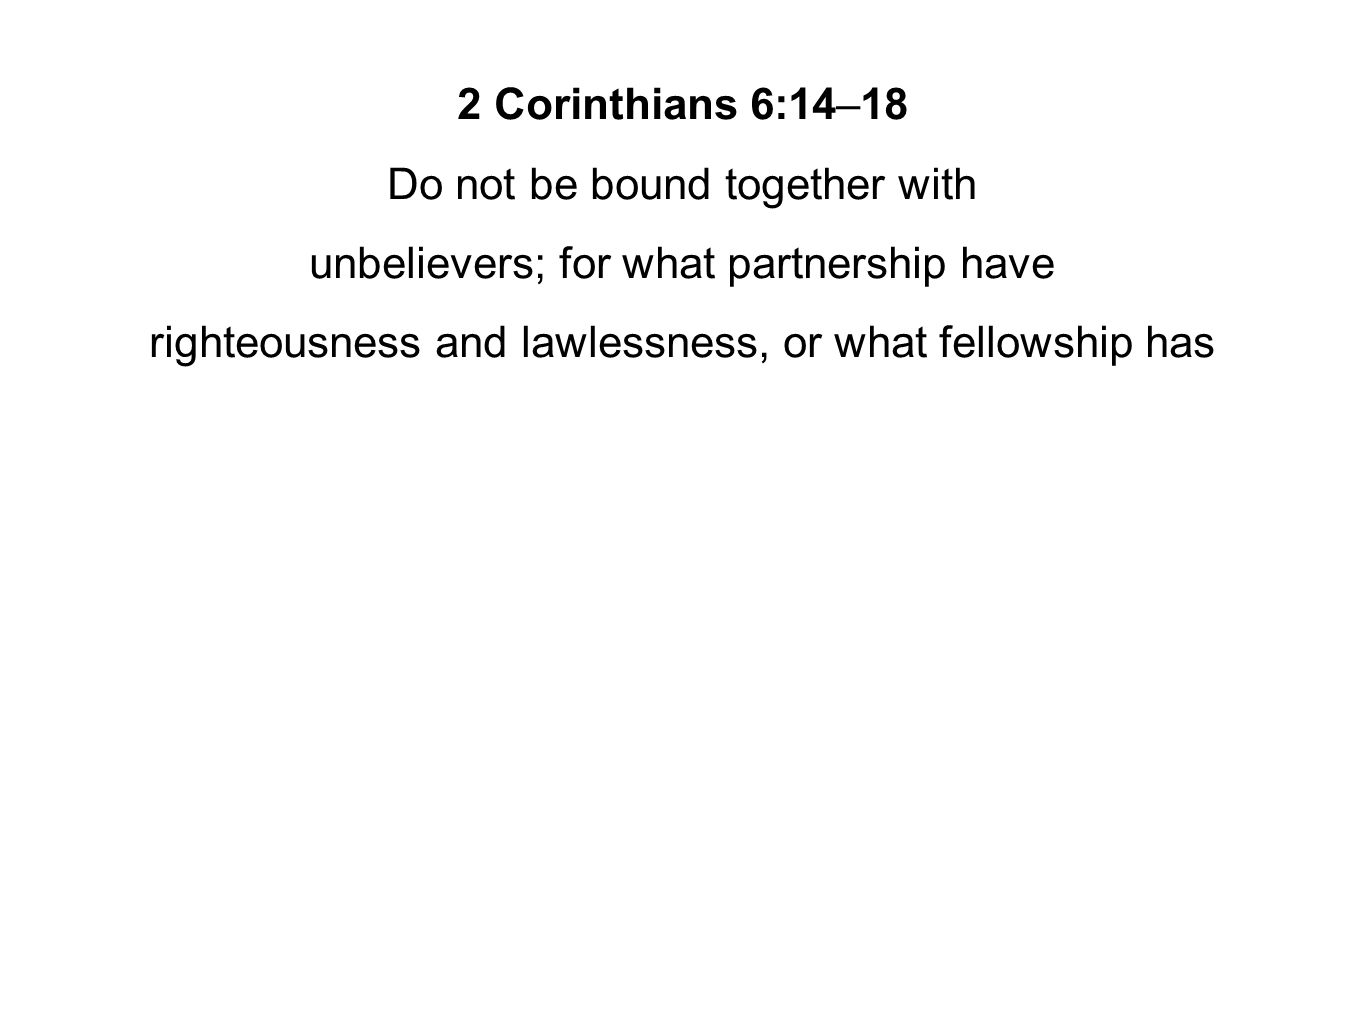 2 Corinthians 6:14–18 Do not be bound together with unbelievers; for what partnership have righteousness and lawlessness, or what fellowship has